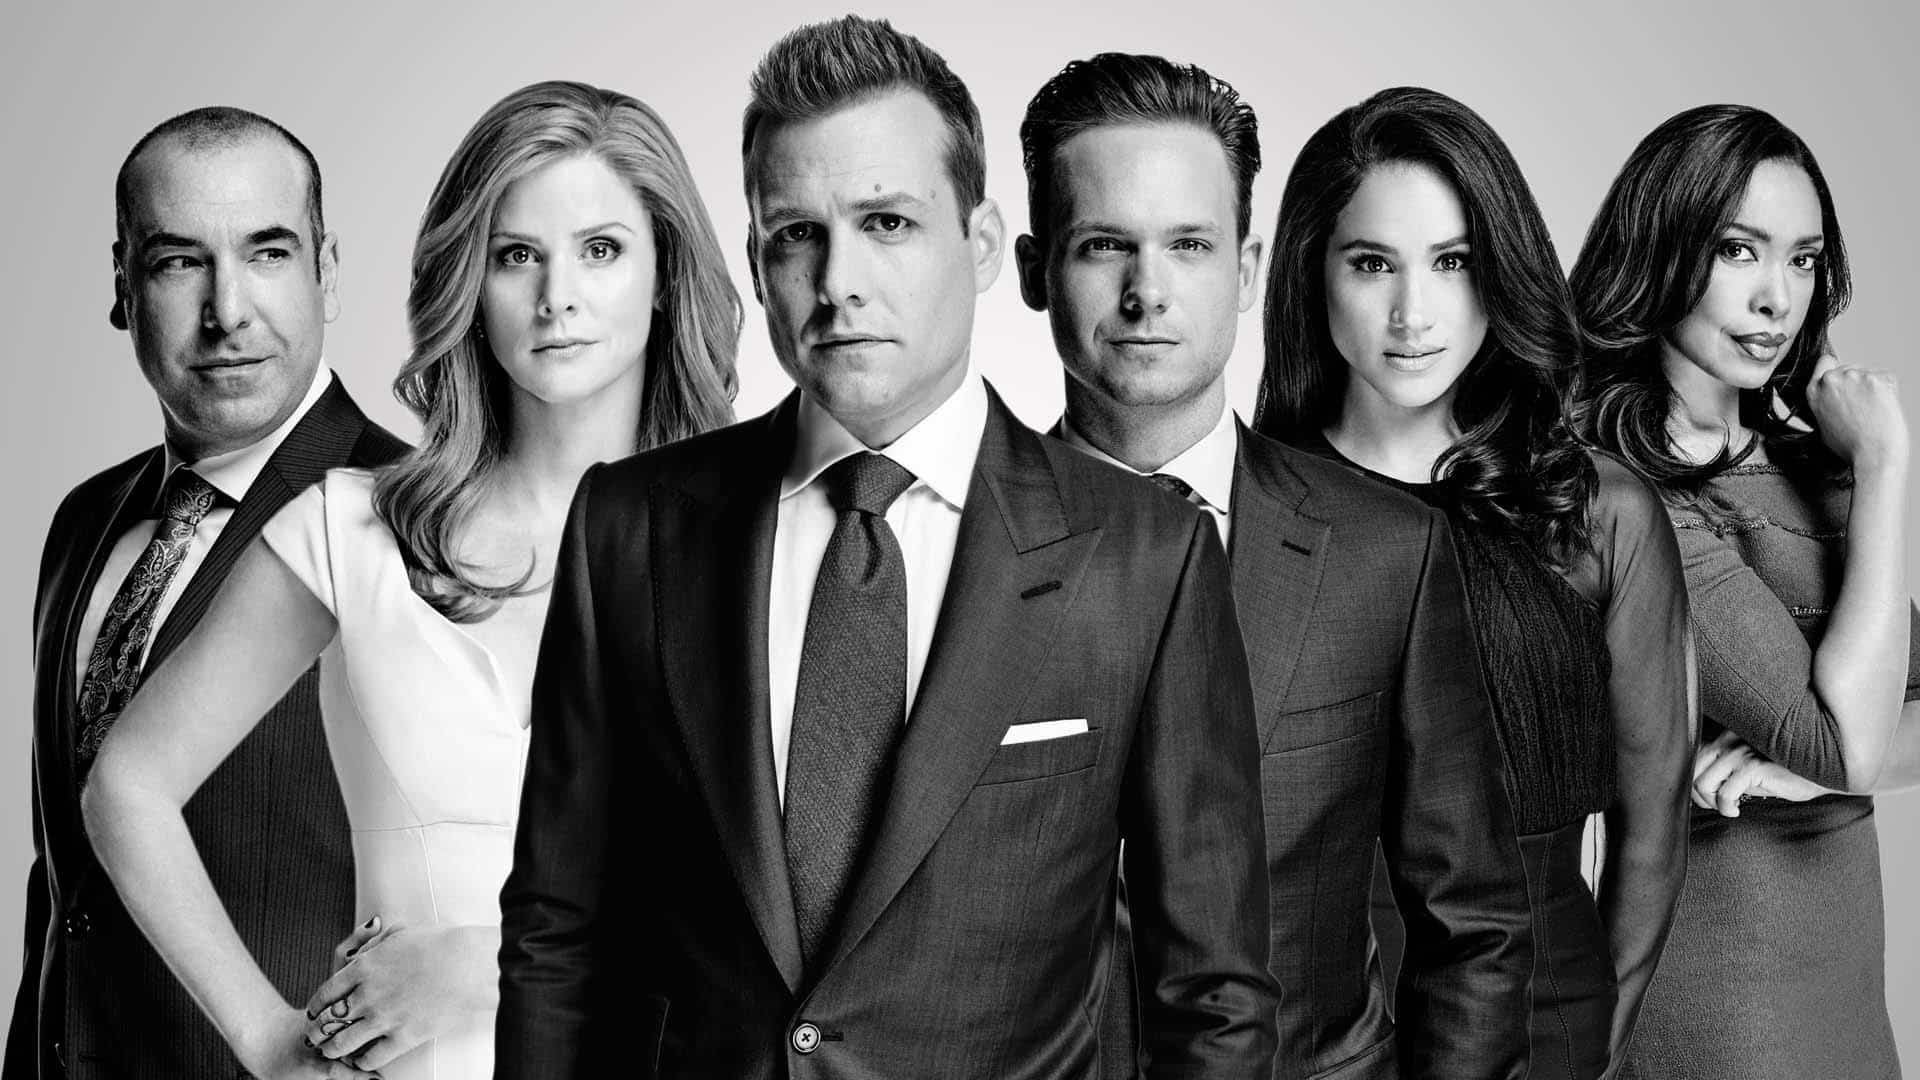 How To Legally Watch Suits Online (TV Series)